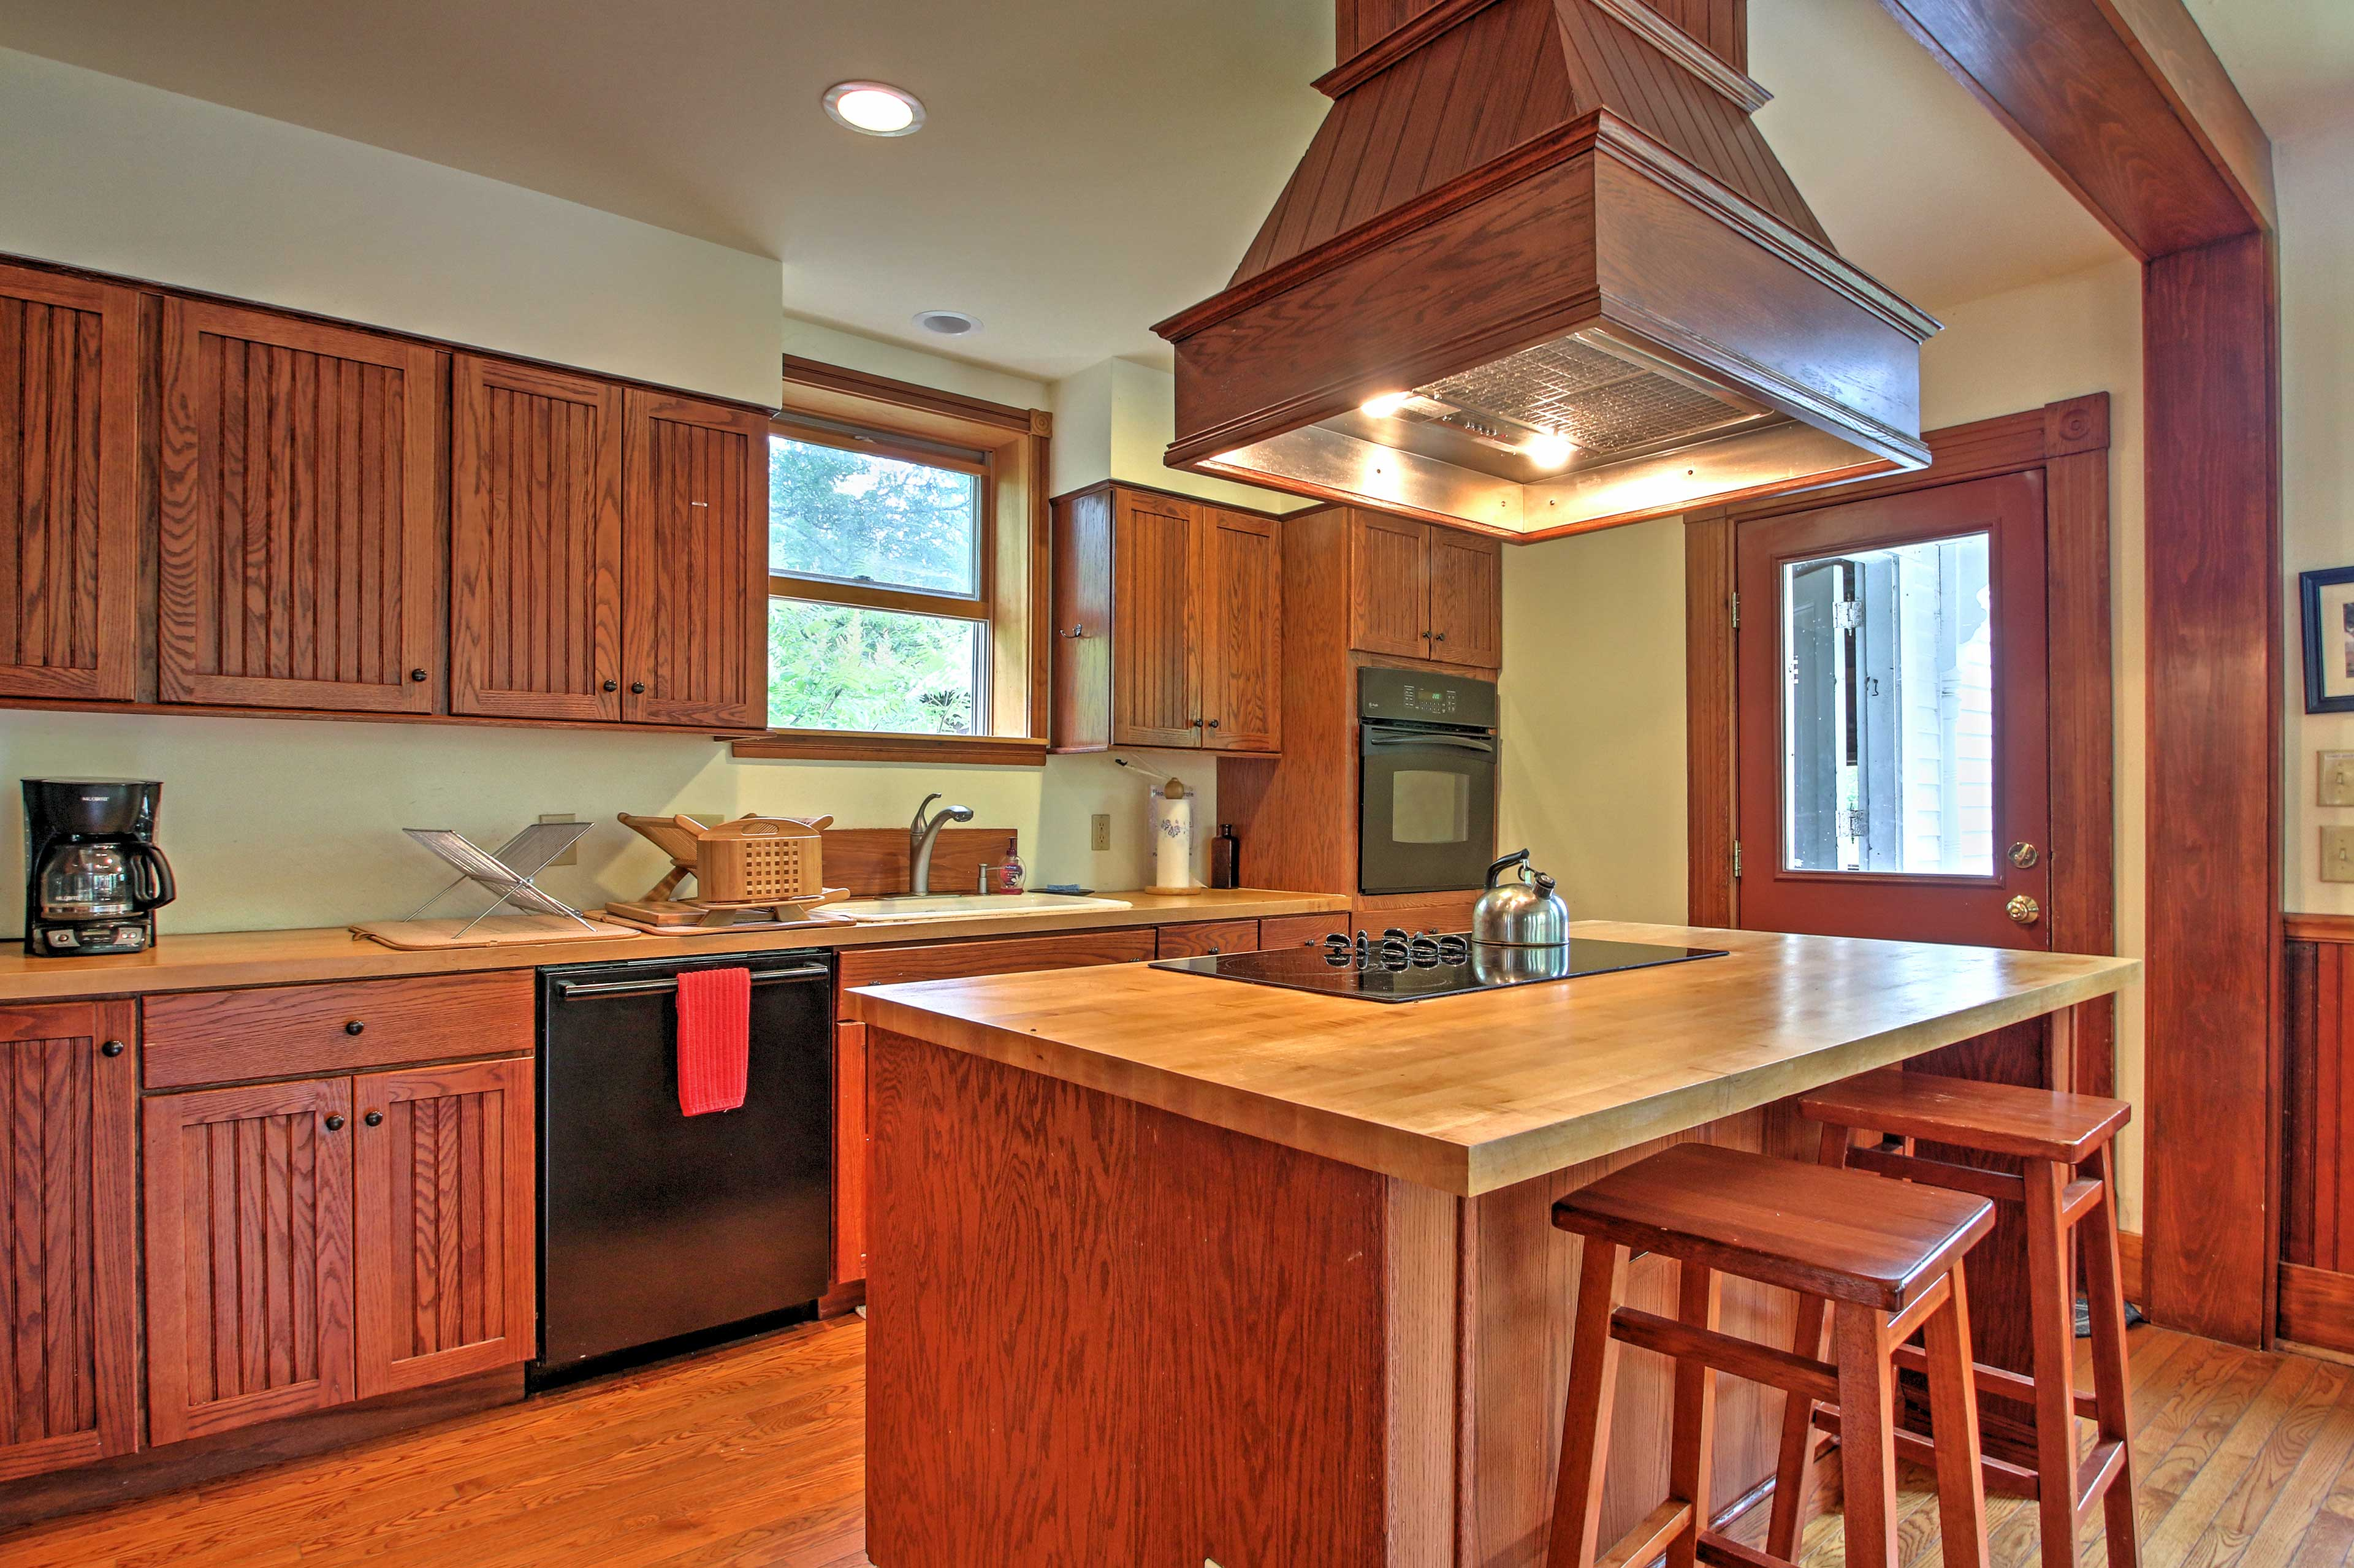 The kitchen is newly updated, featuring beautiful wood cabinets.